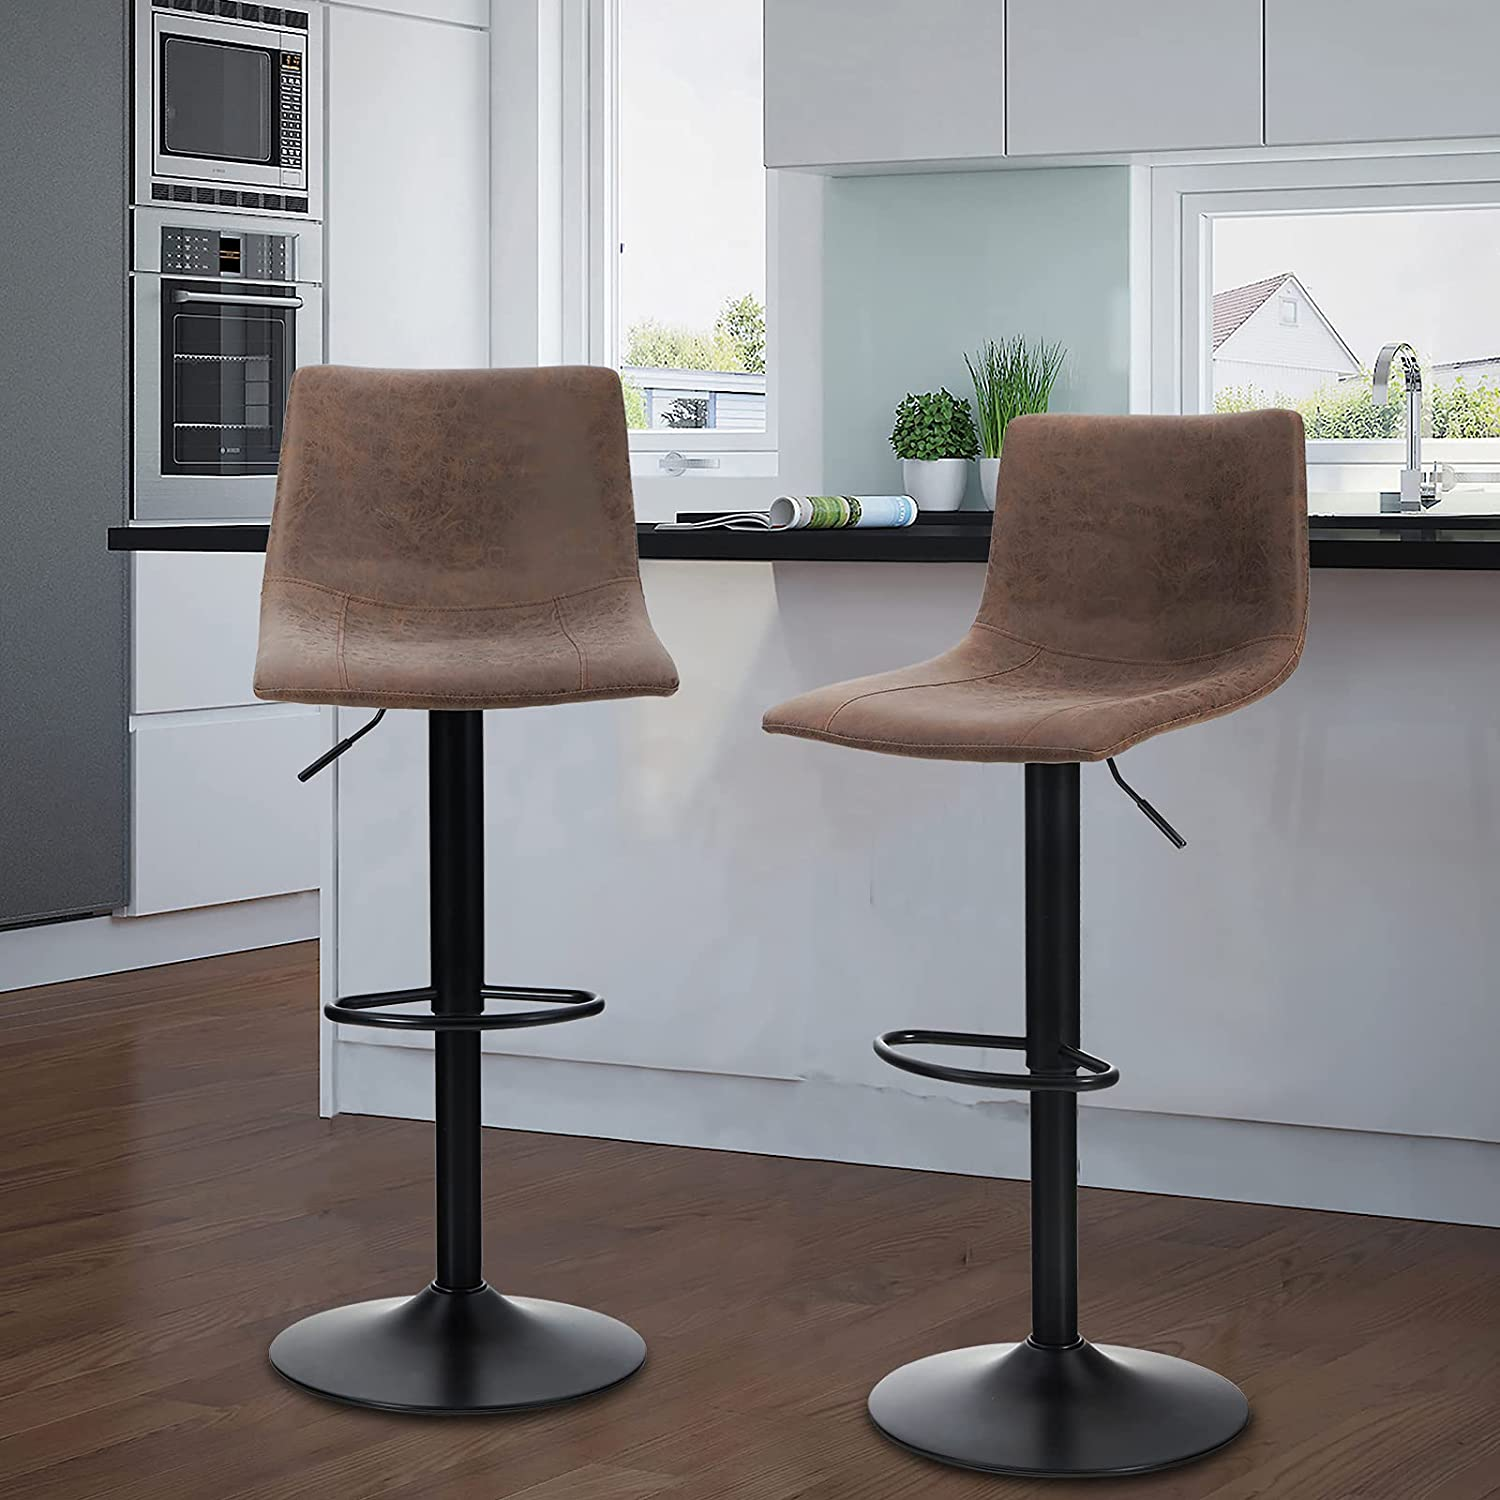 Maison Swivel Bar Stools Set of 2 for Kitchen Counter Adjustable Counter Height Bar Chairs with Back Tall Barstools Faux Leather Kitchen Island Stools, 300LBS Bear Capacity, Brown